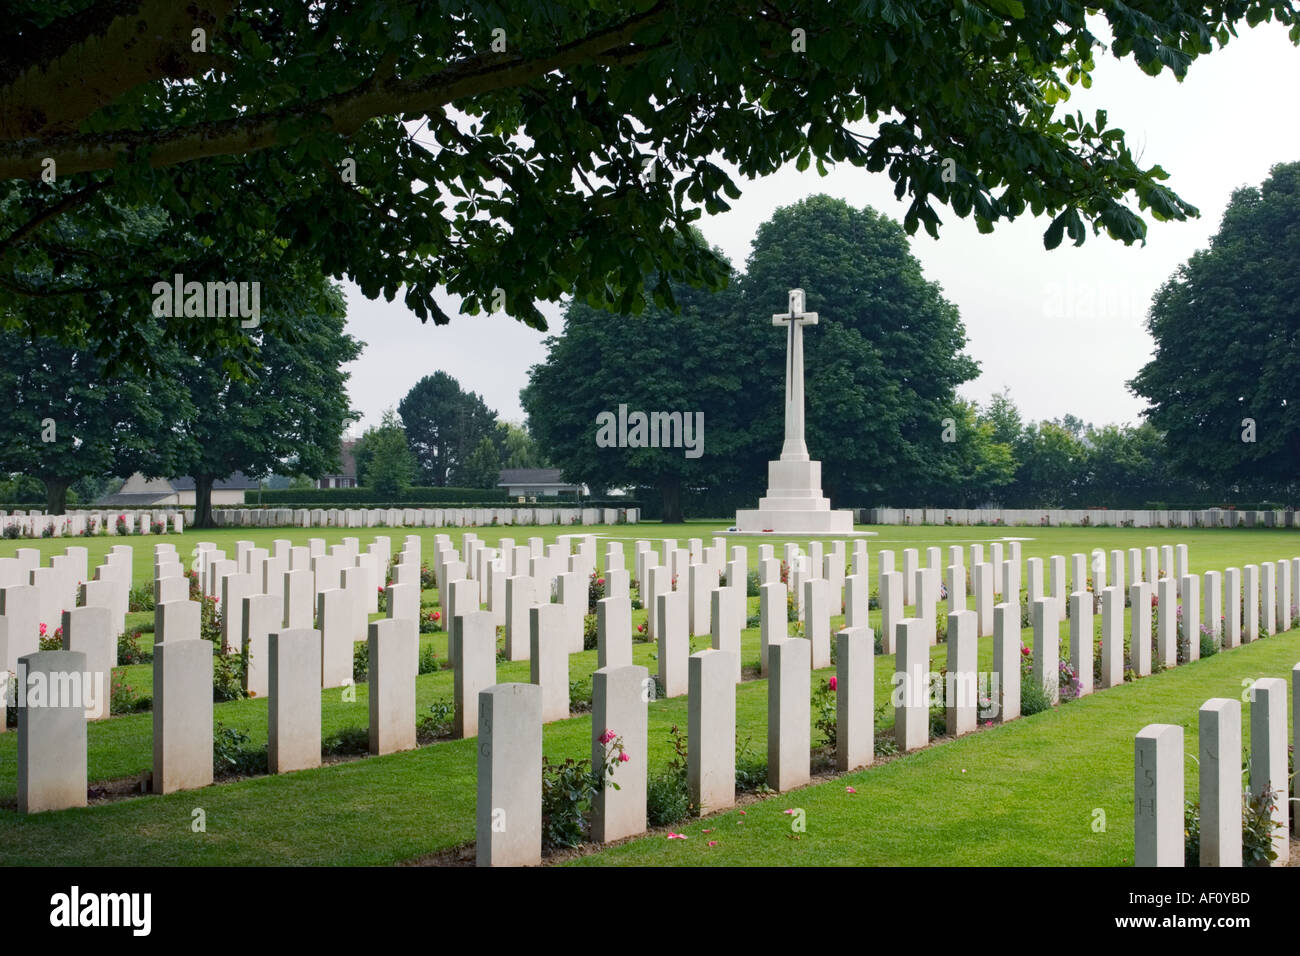 Bayeux Military Cemetery largest British Commonwealth WW2 Cemetery in the world Bayeux Normandy France Stock Photo